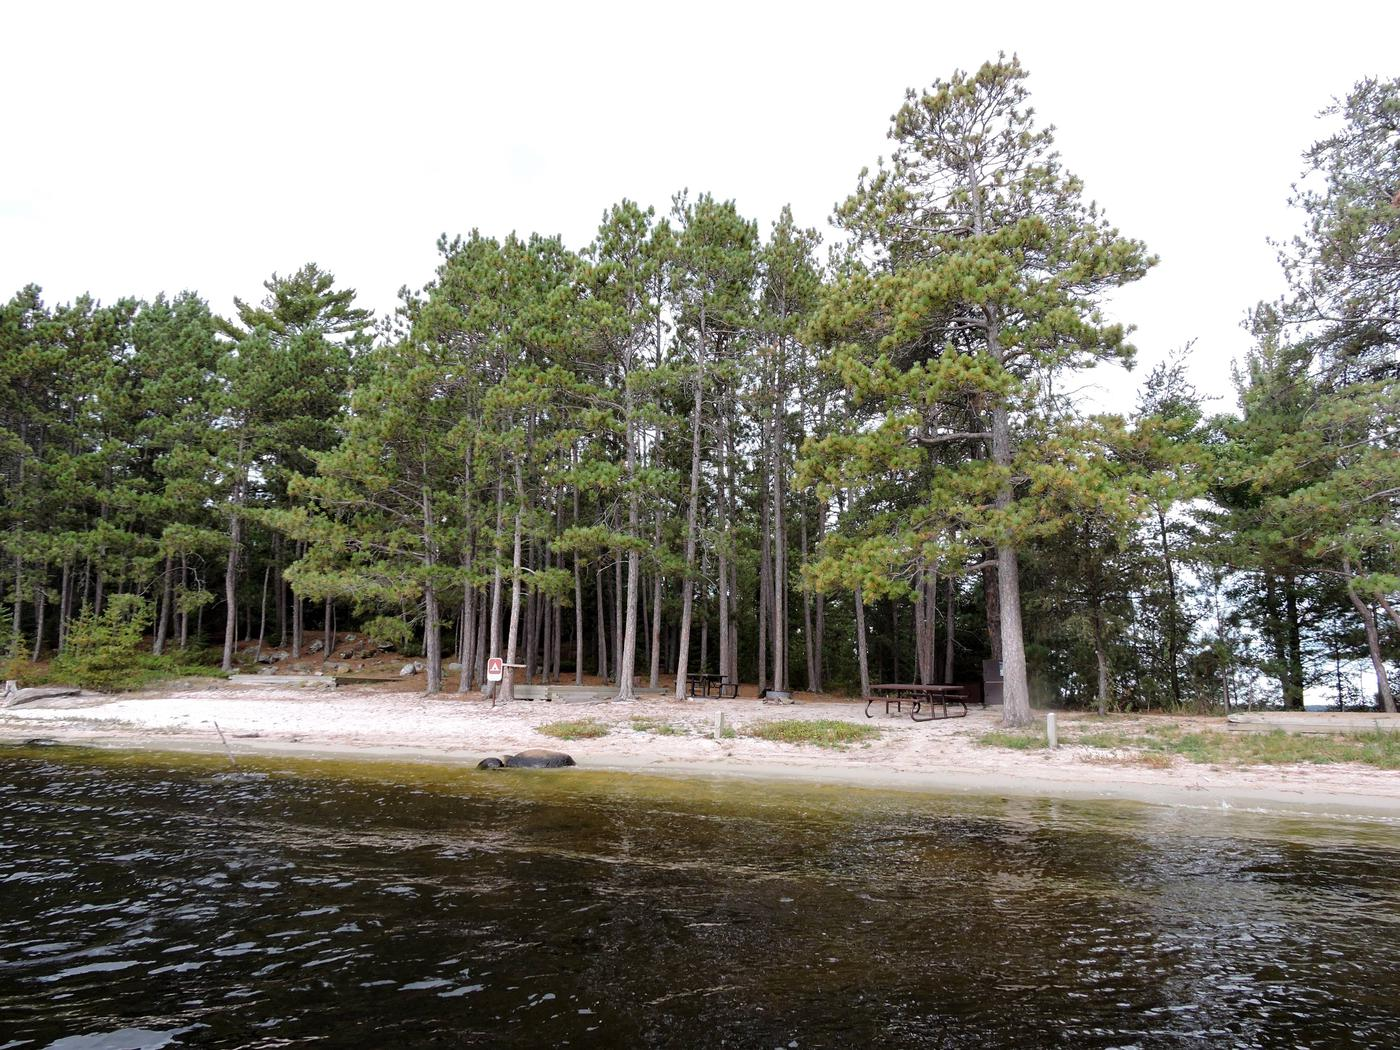 R106 - Shelland IslandView of campsite from the water